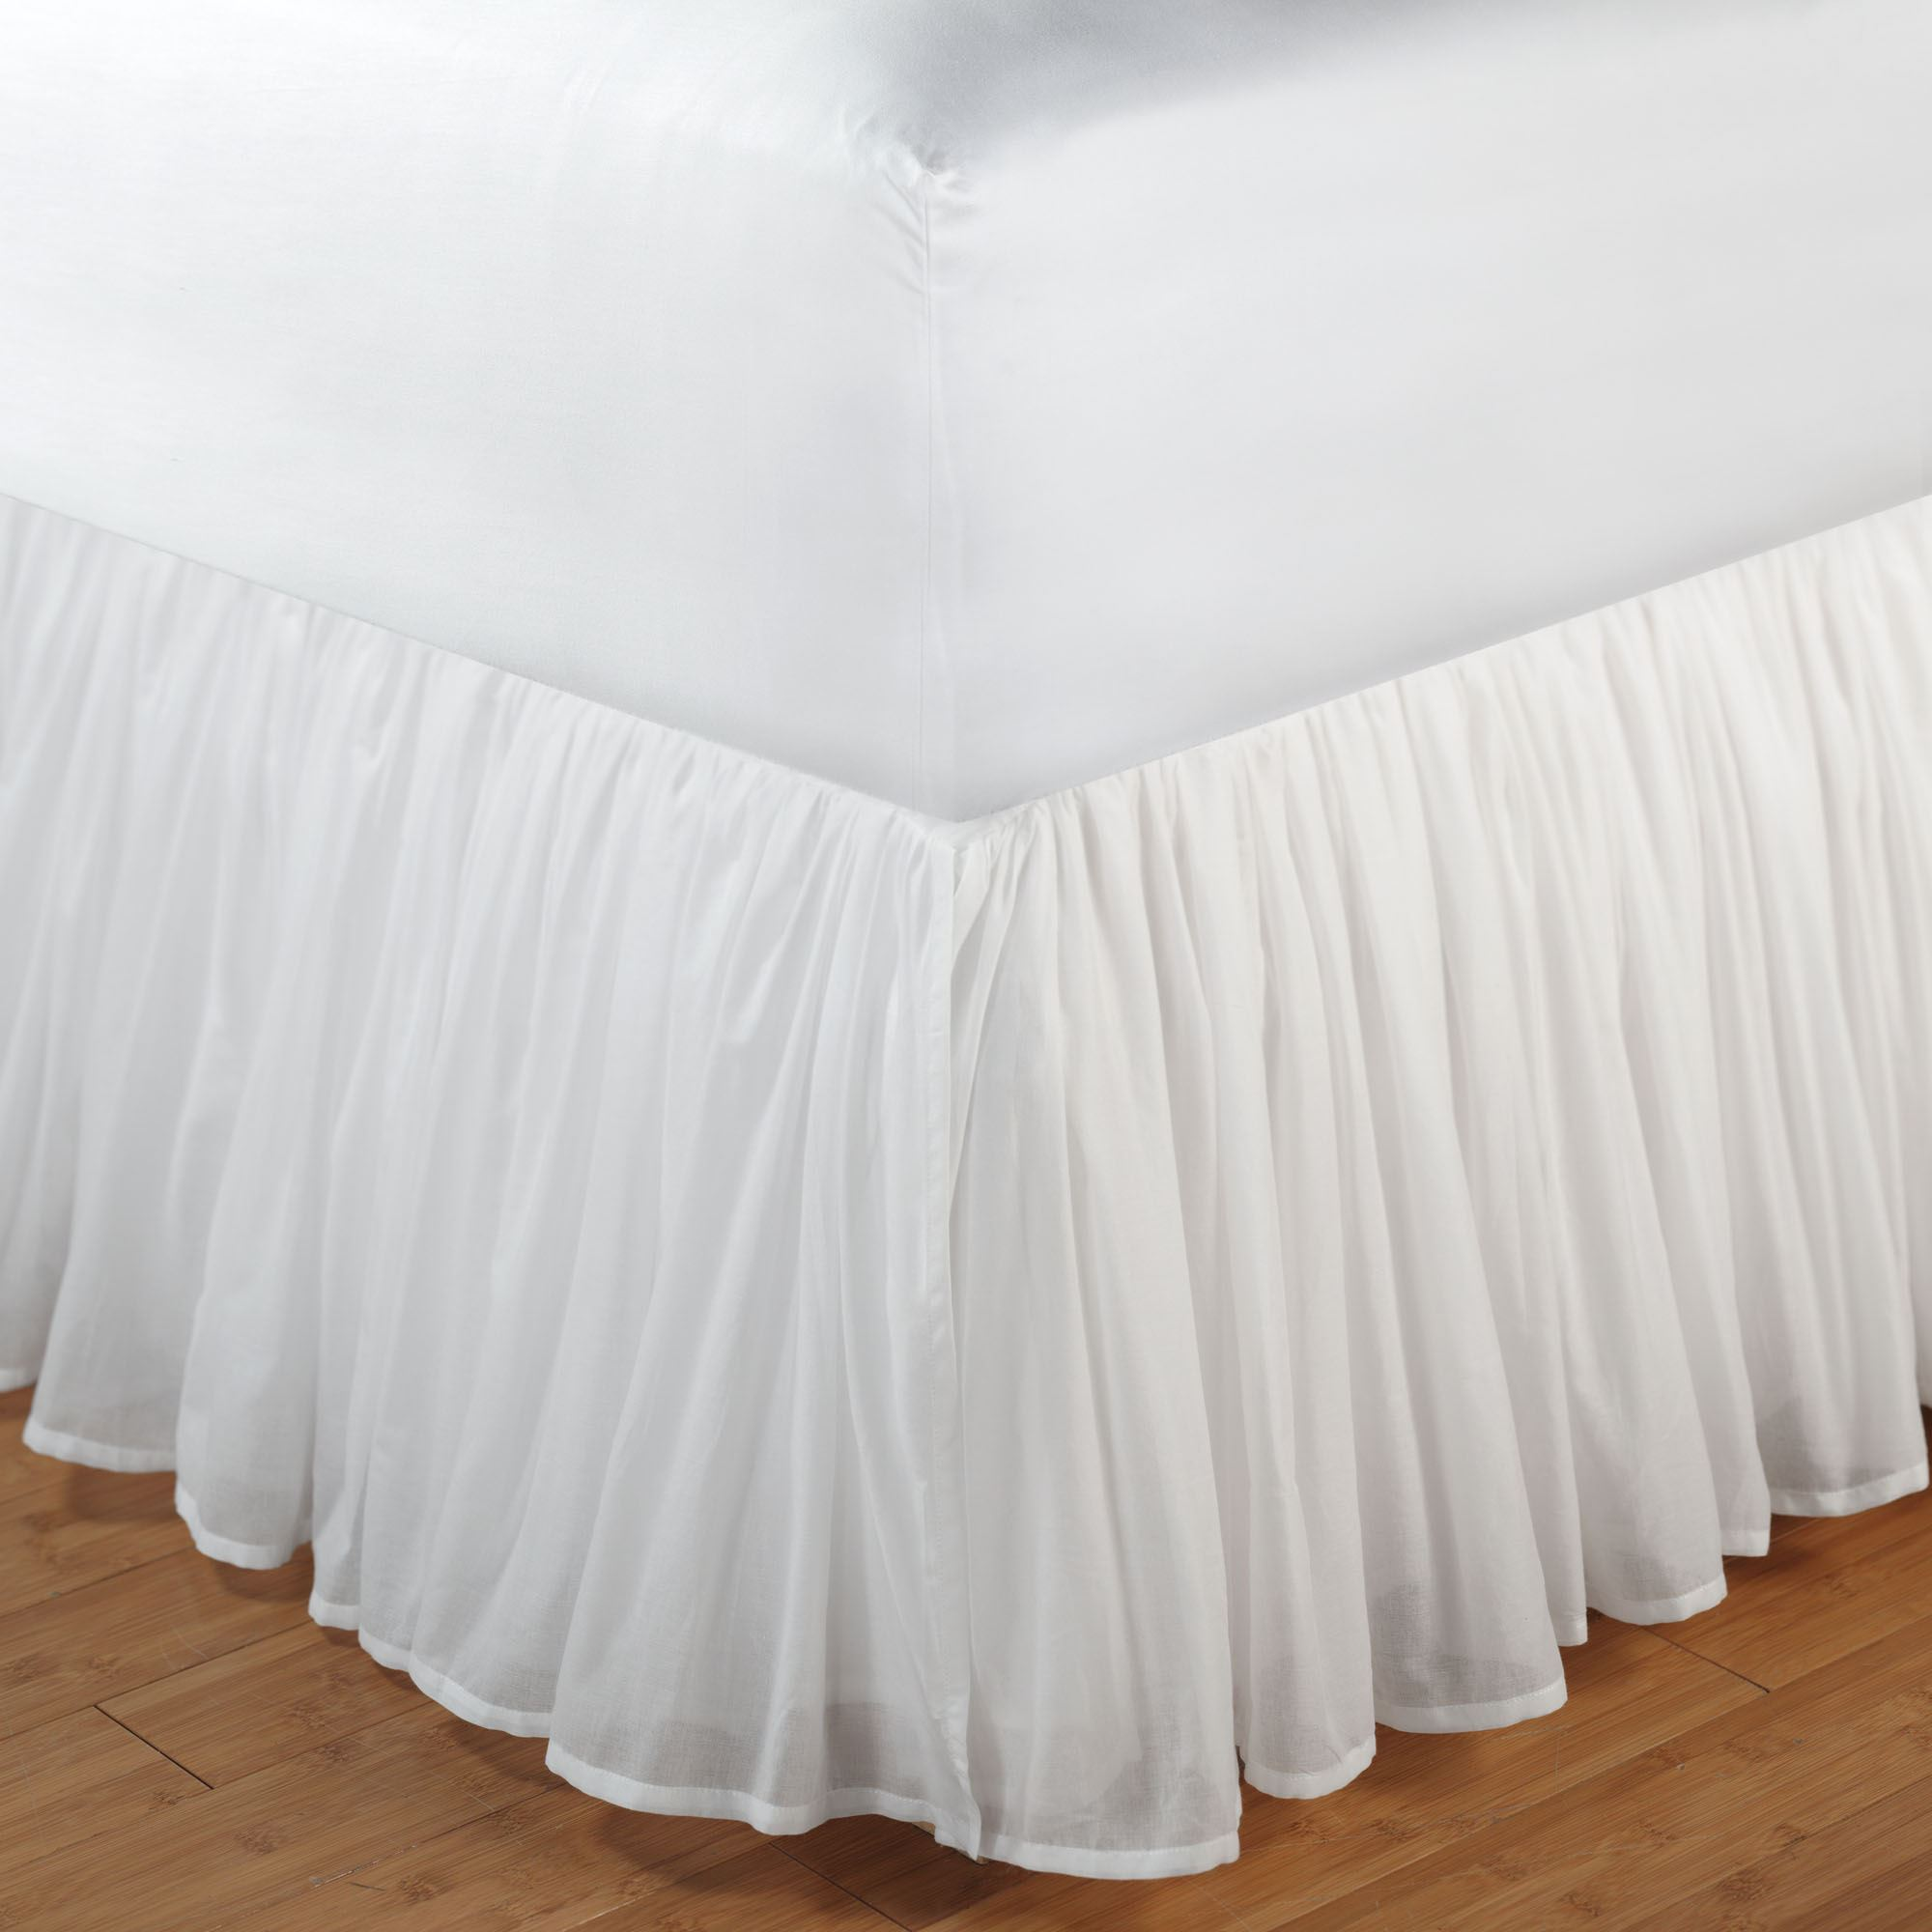 Amusing bedskirts for bedroom with daybed bedskirt